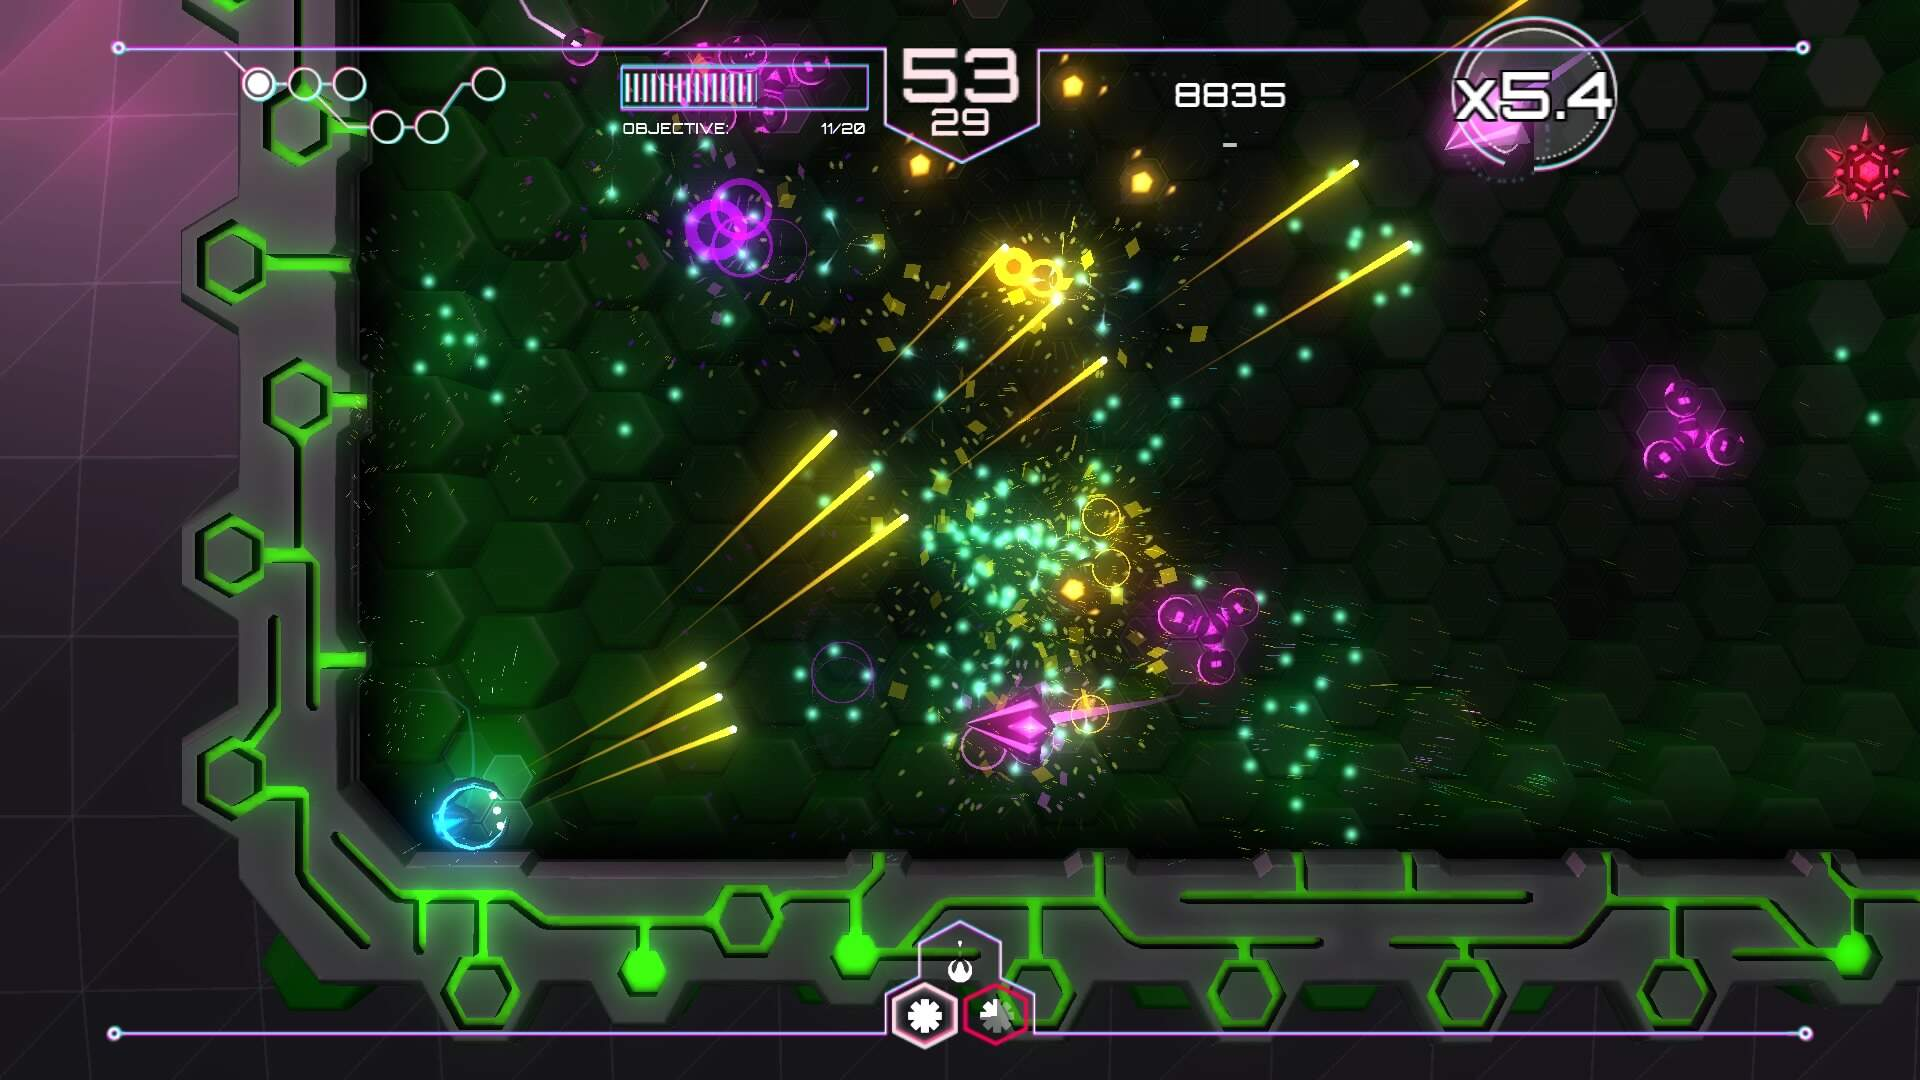 PS4 Twin Stick Shooter Battle: Tachyon Project vs AIPD